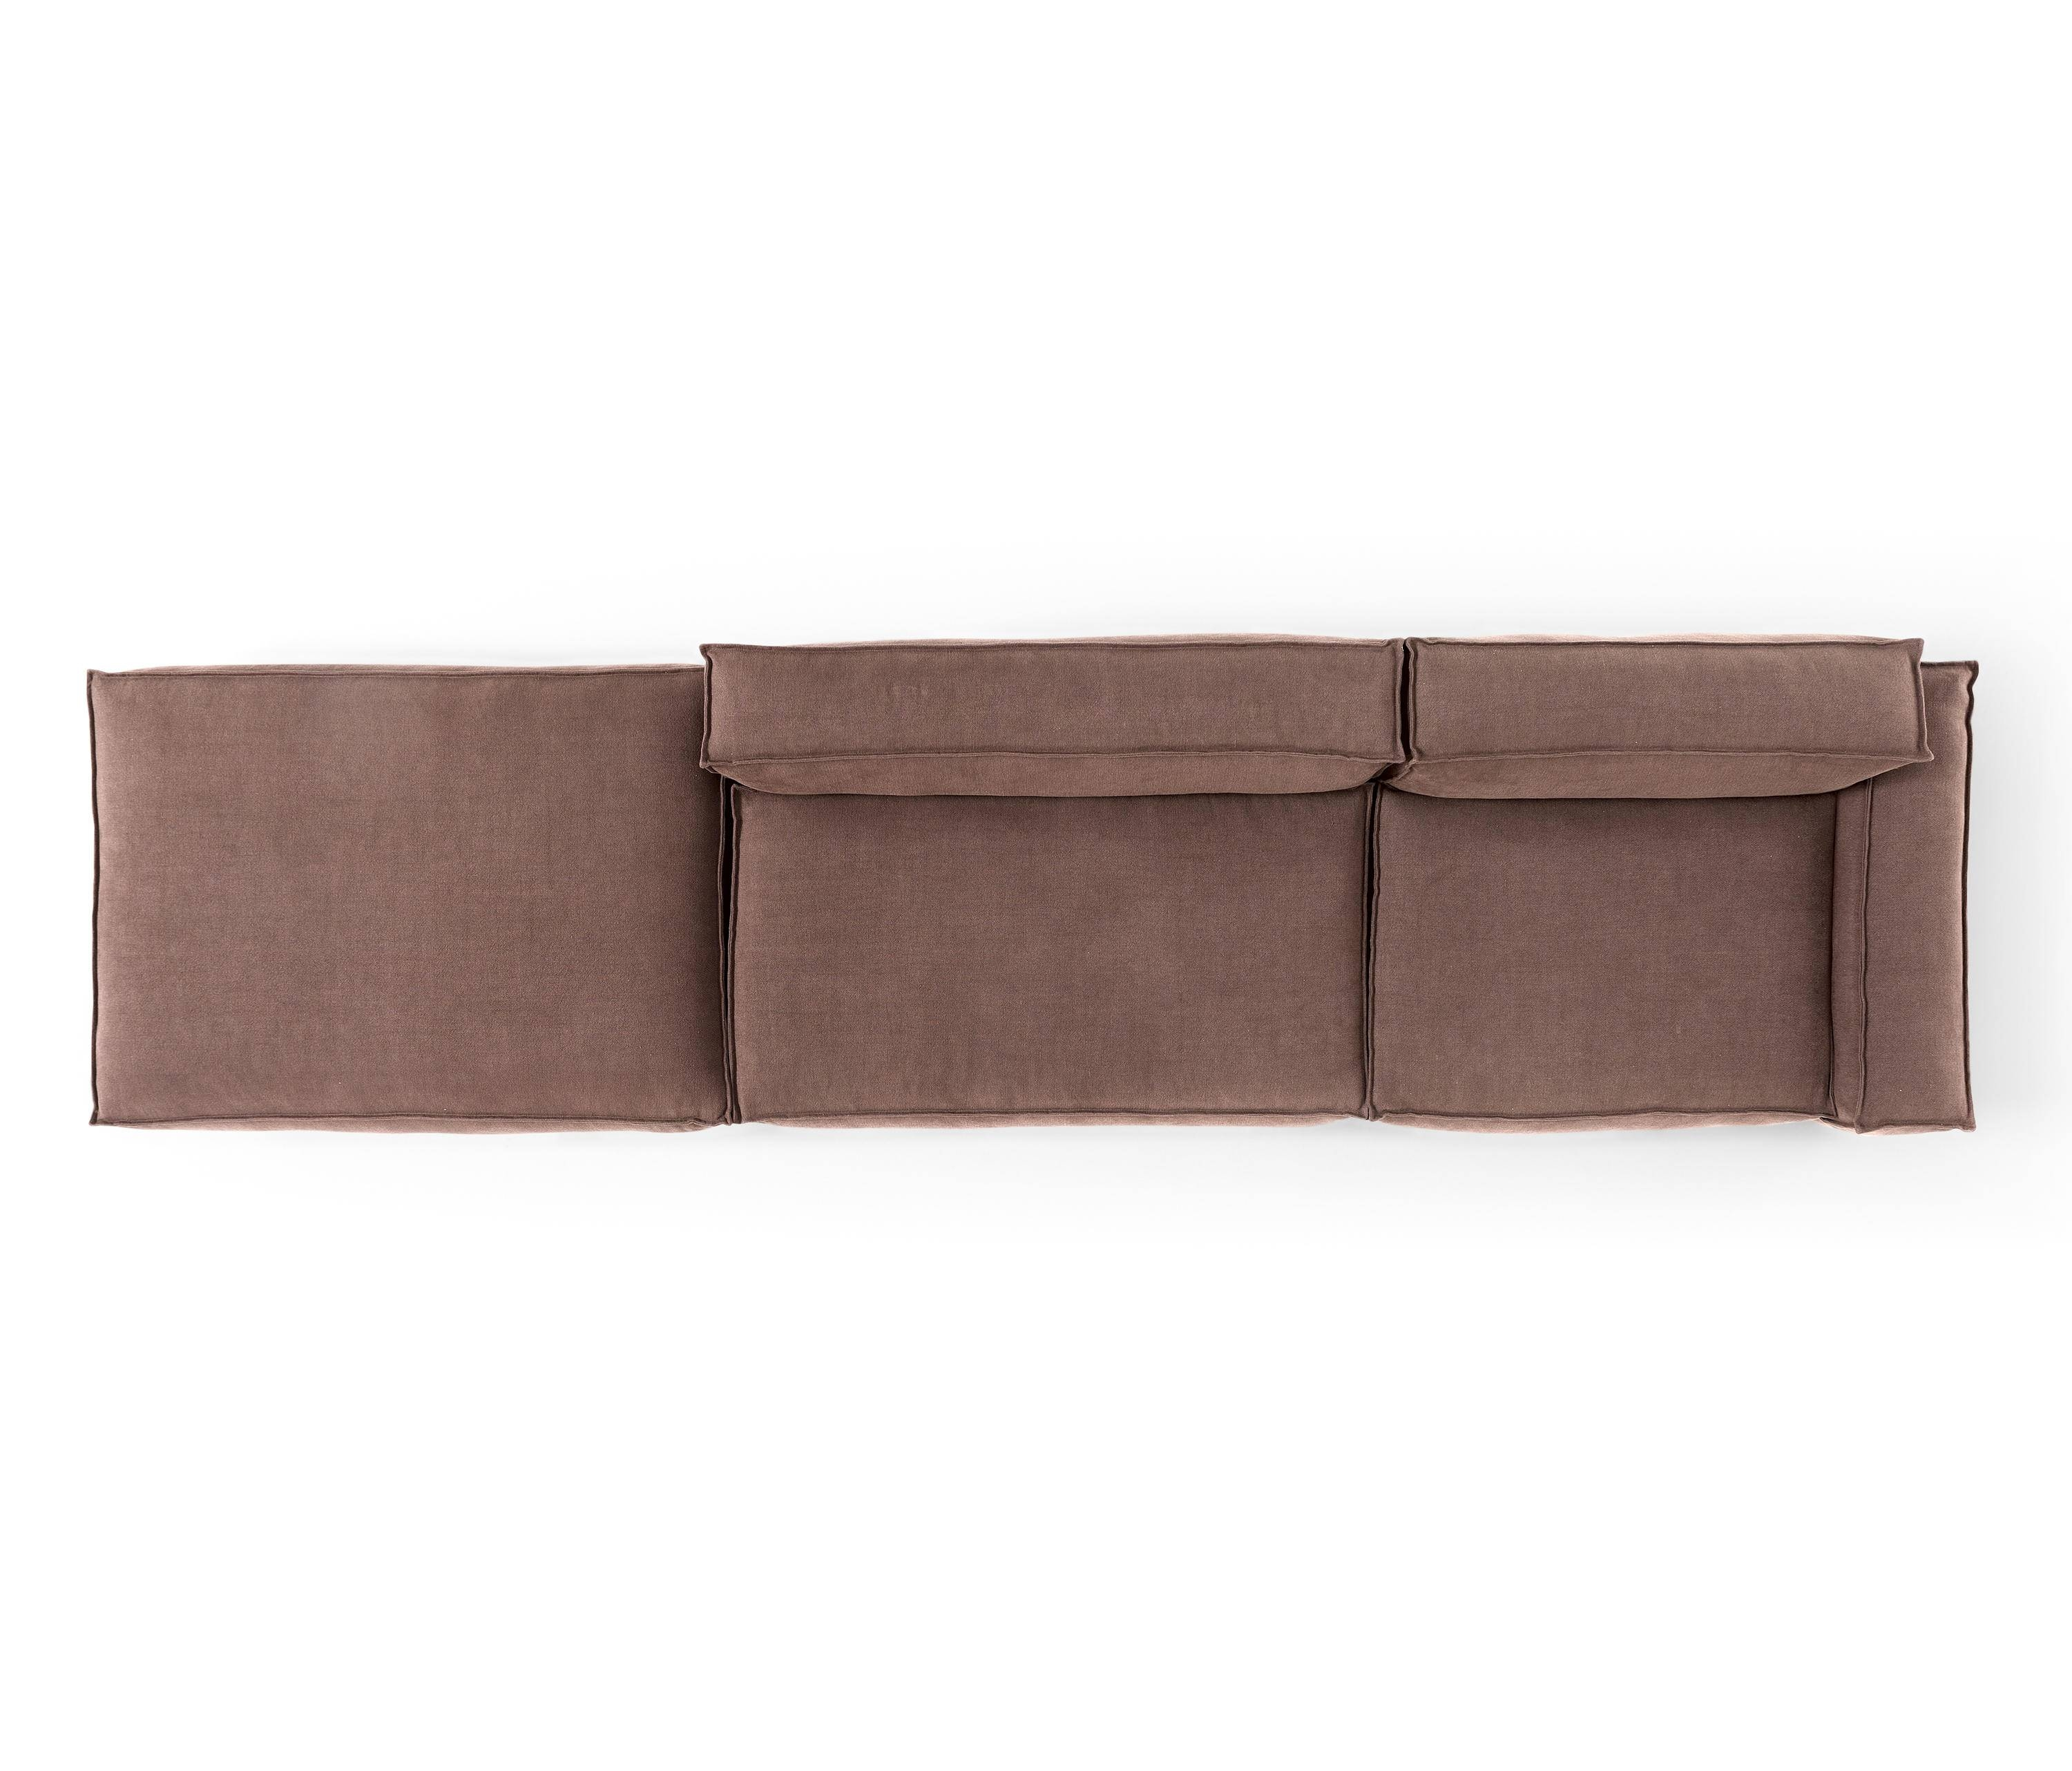 Davis - Sofas From Amura | Architonic intended for Davis Sofas (Image 2 of 15)